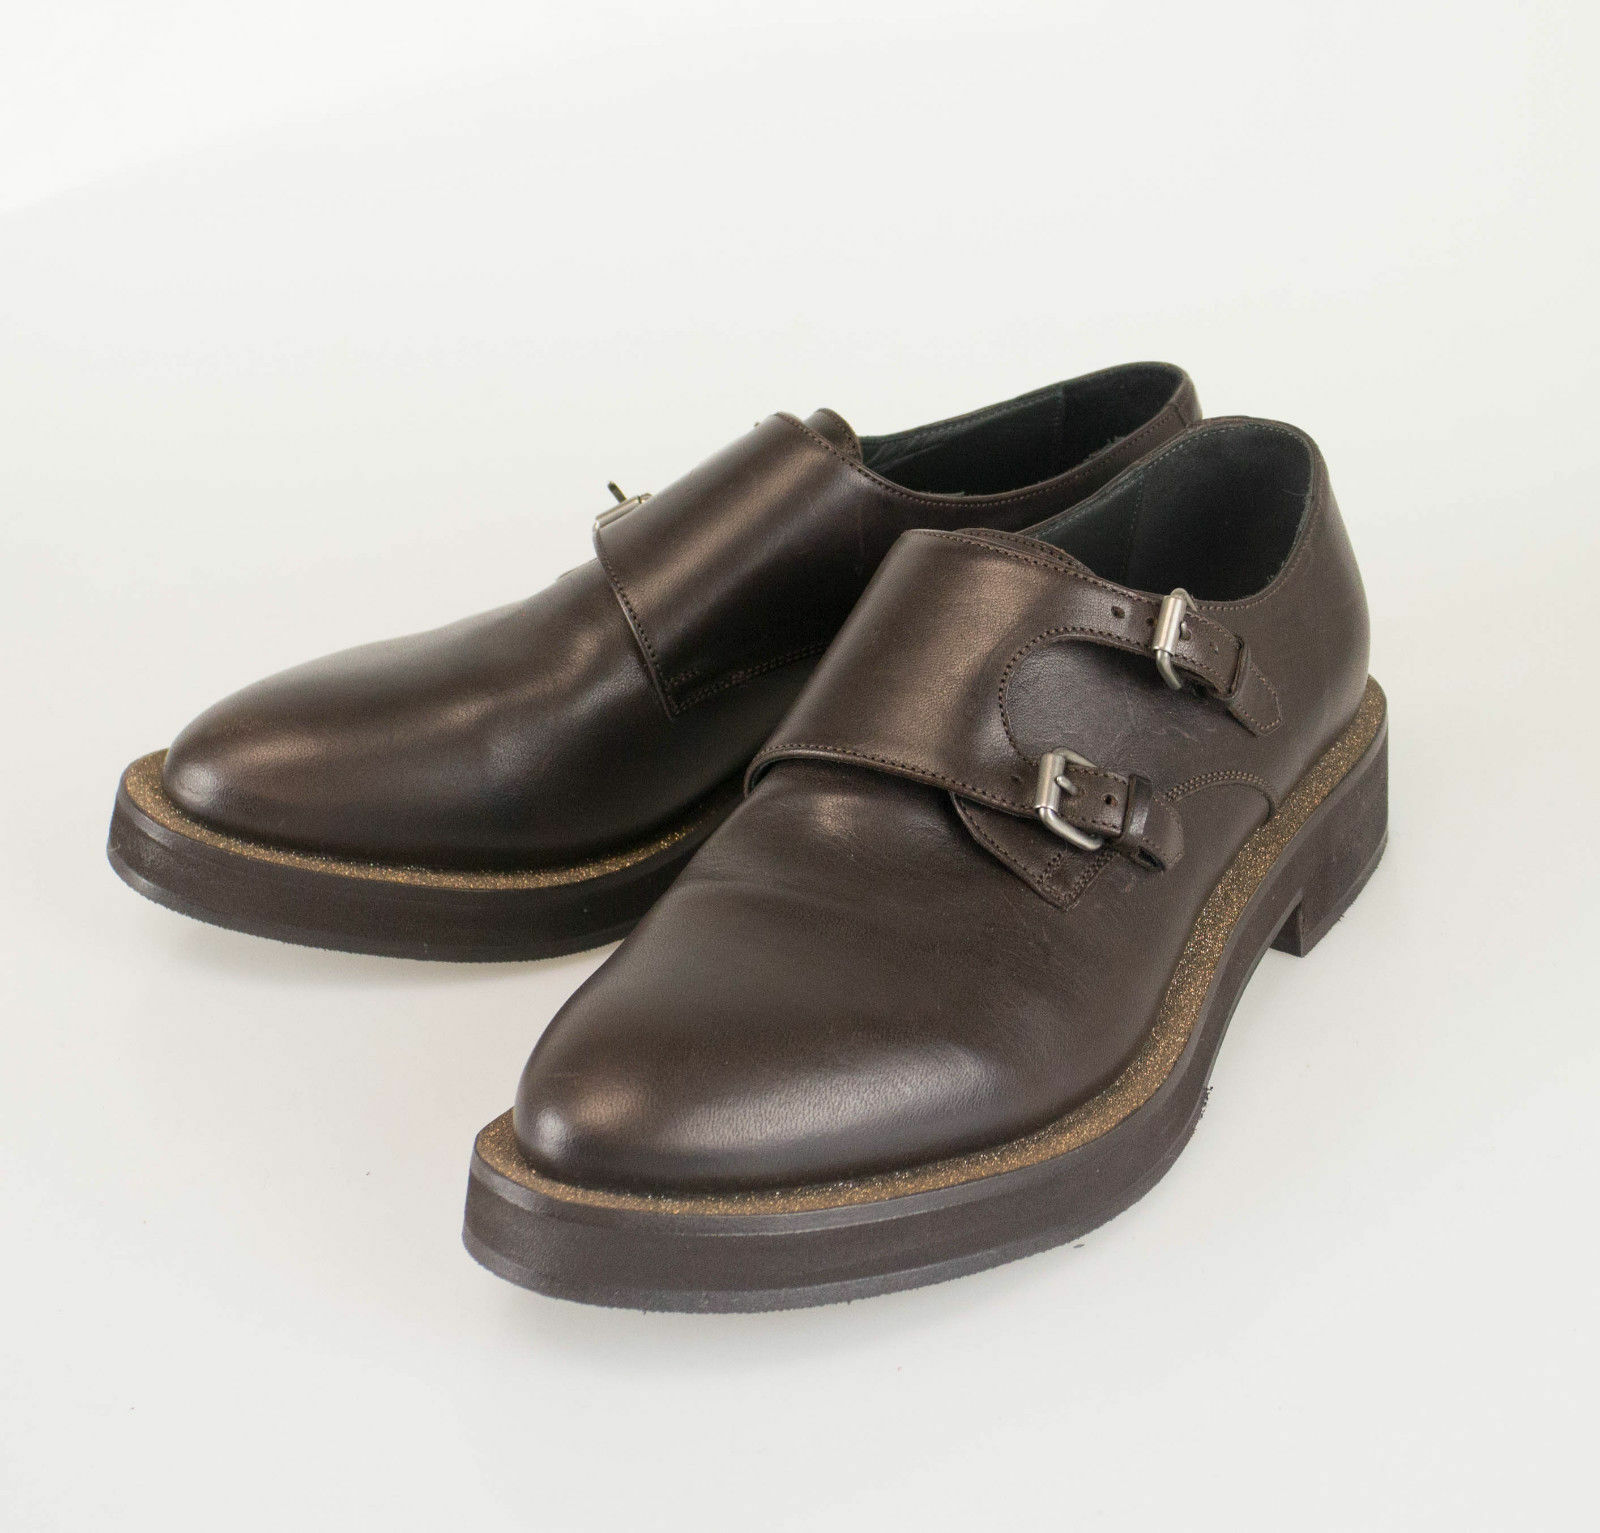 New BRUNELLO CUCINELLI Brown Leather W/ Glitter Loafers Shoes 39.5/9.5  1625